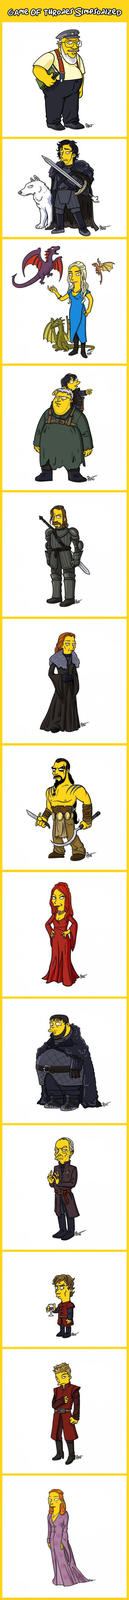 Simpsonized Game of Thrones Characters